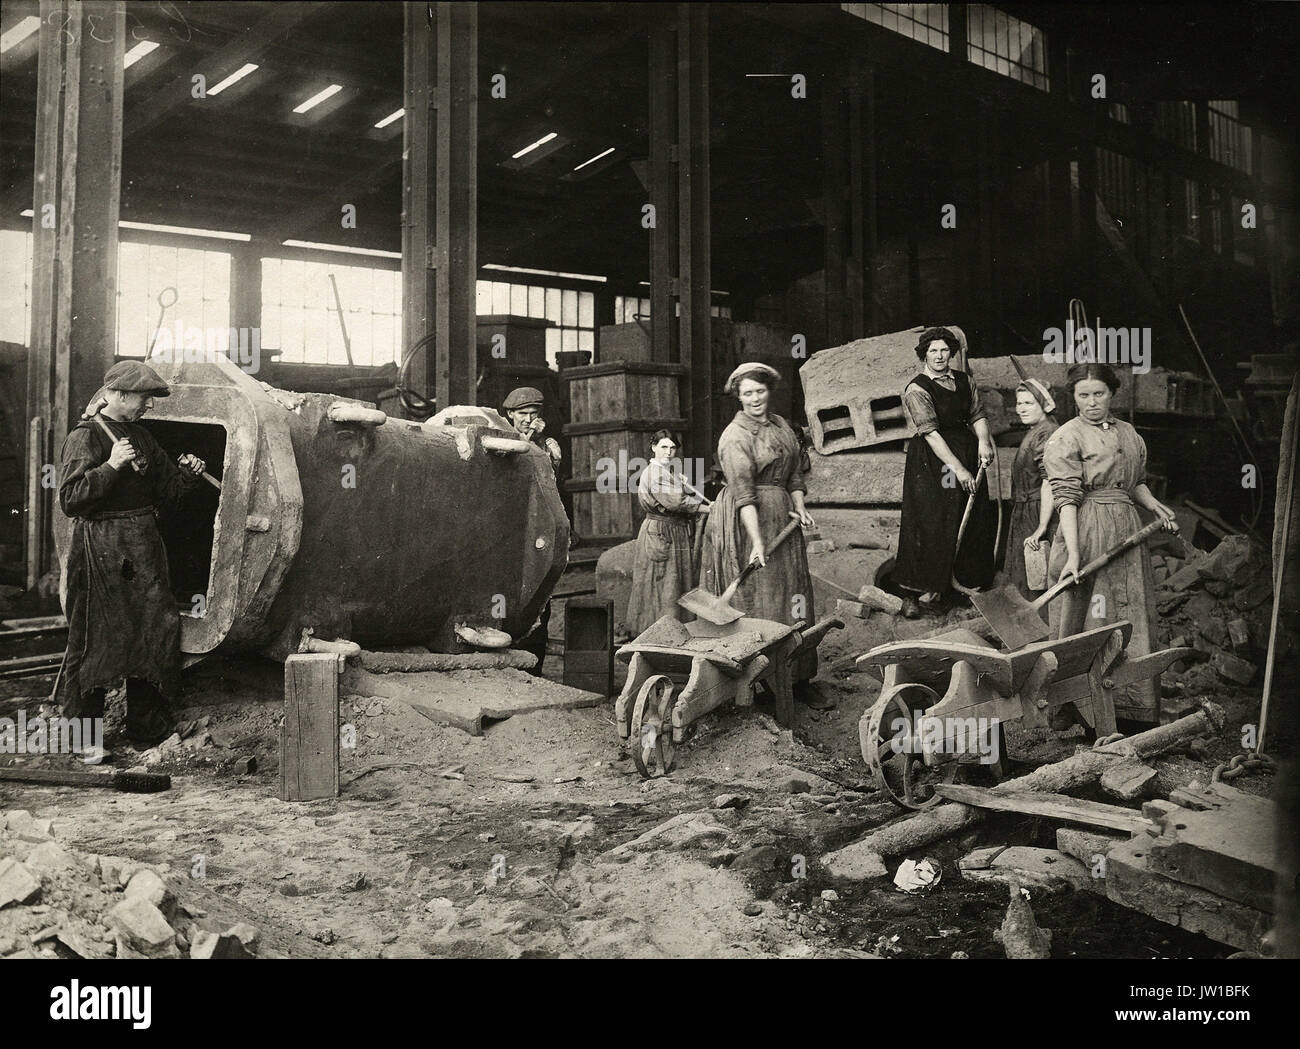 Women engaged in labouring work in dressing shop - Alternative Title: What the daughters of Britain are doing - Stock Image